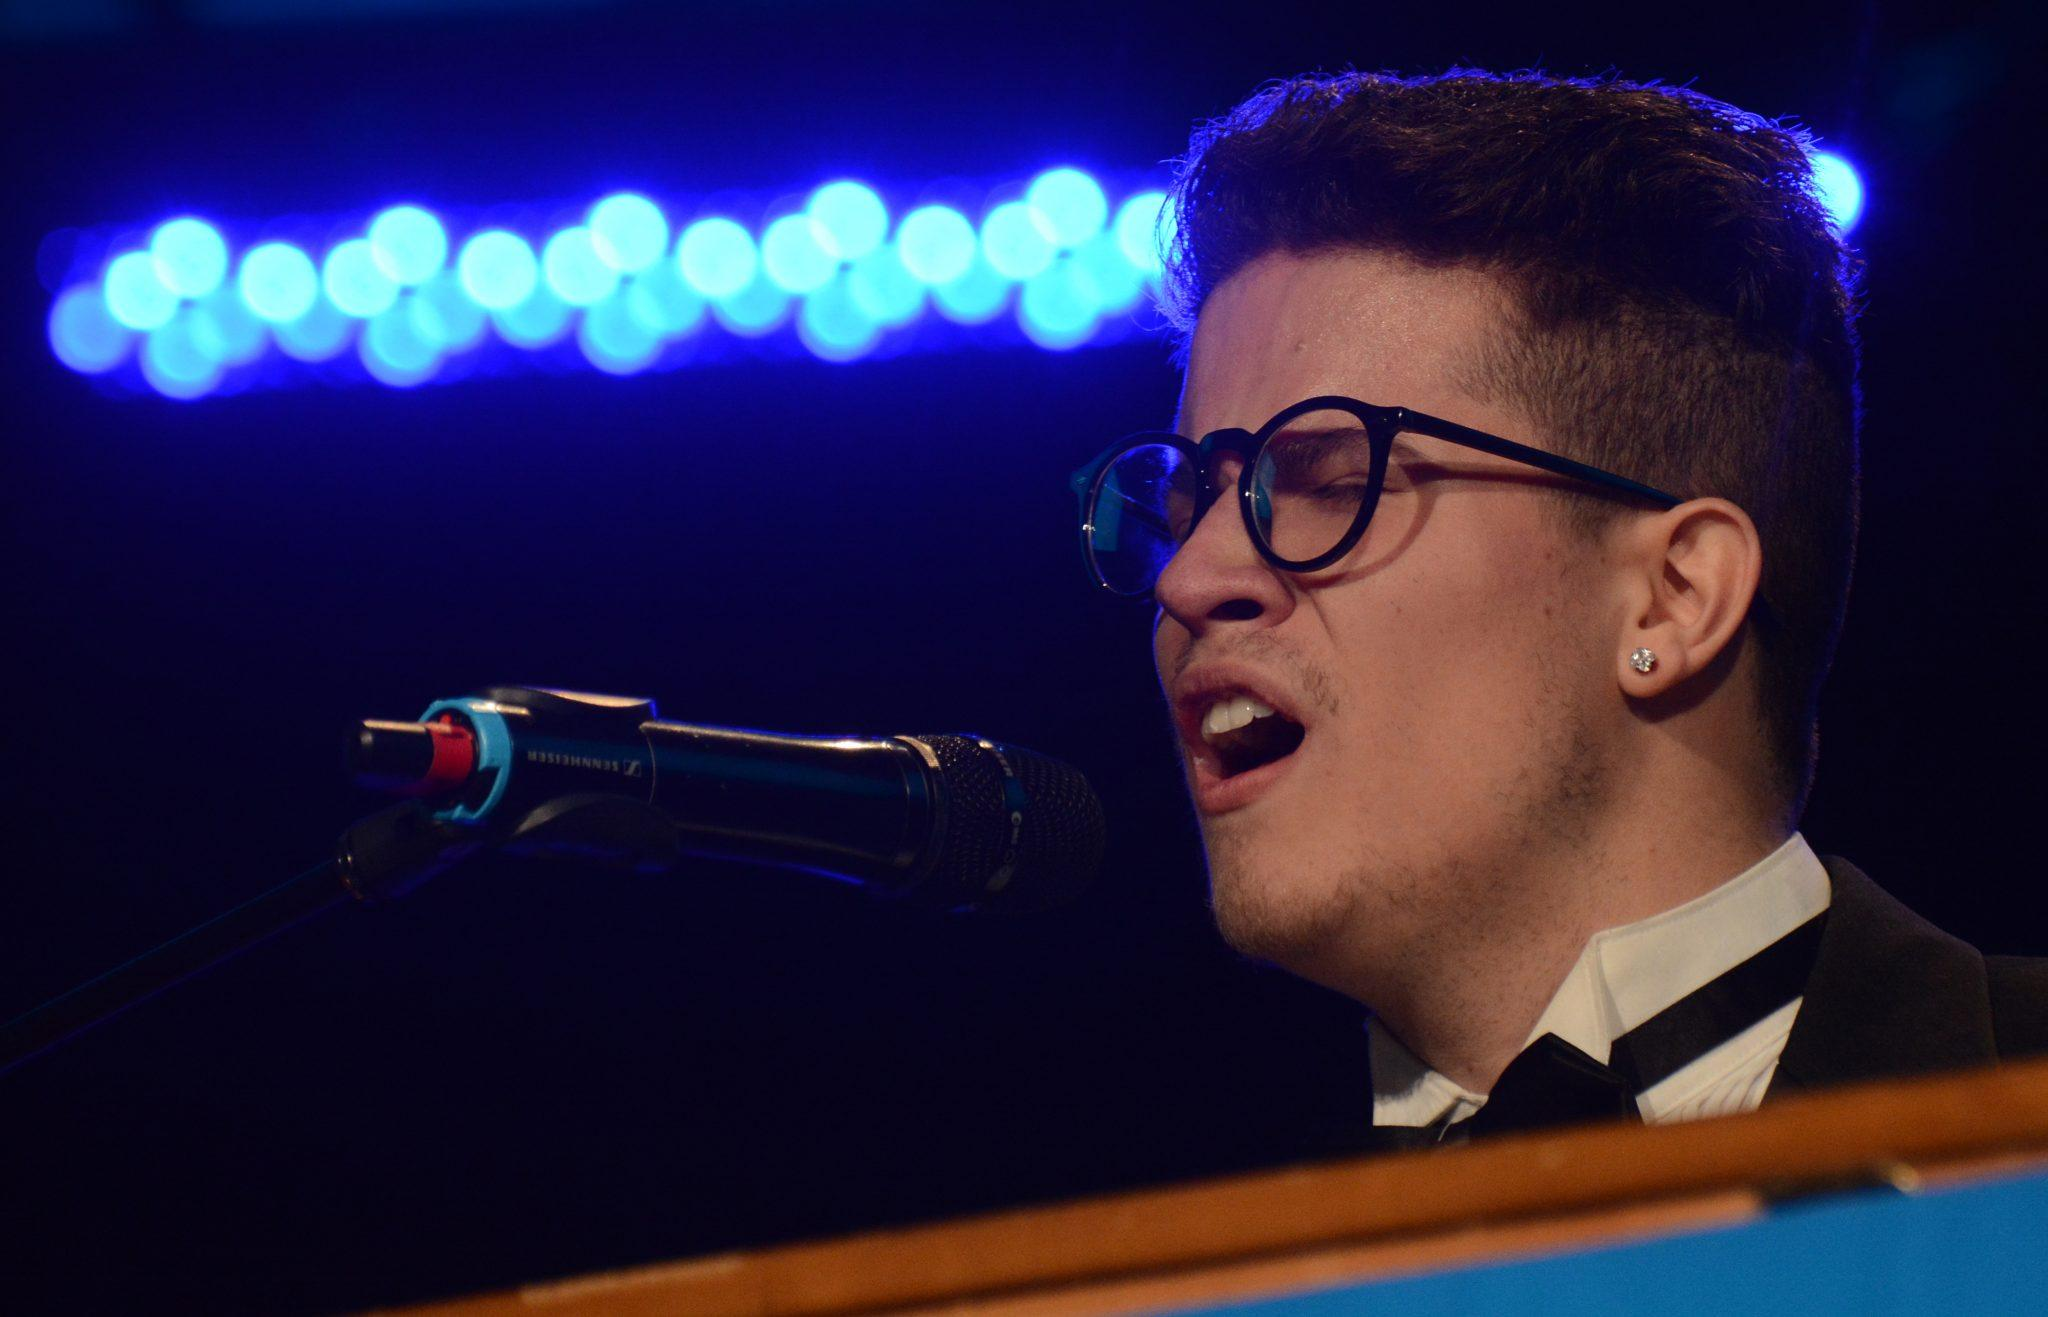 PHOTO GALLERY: Vista Idol